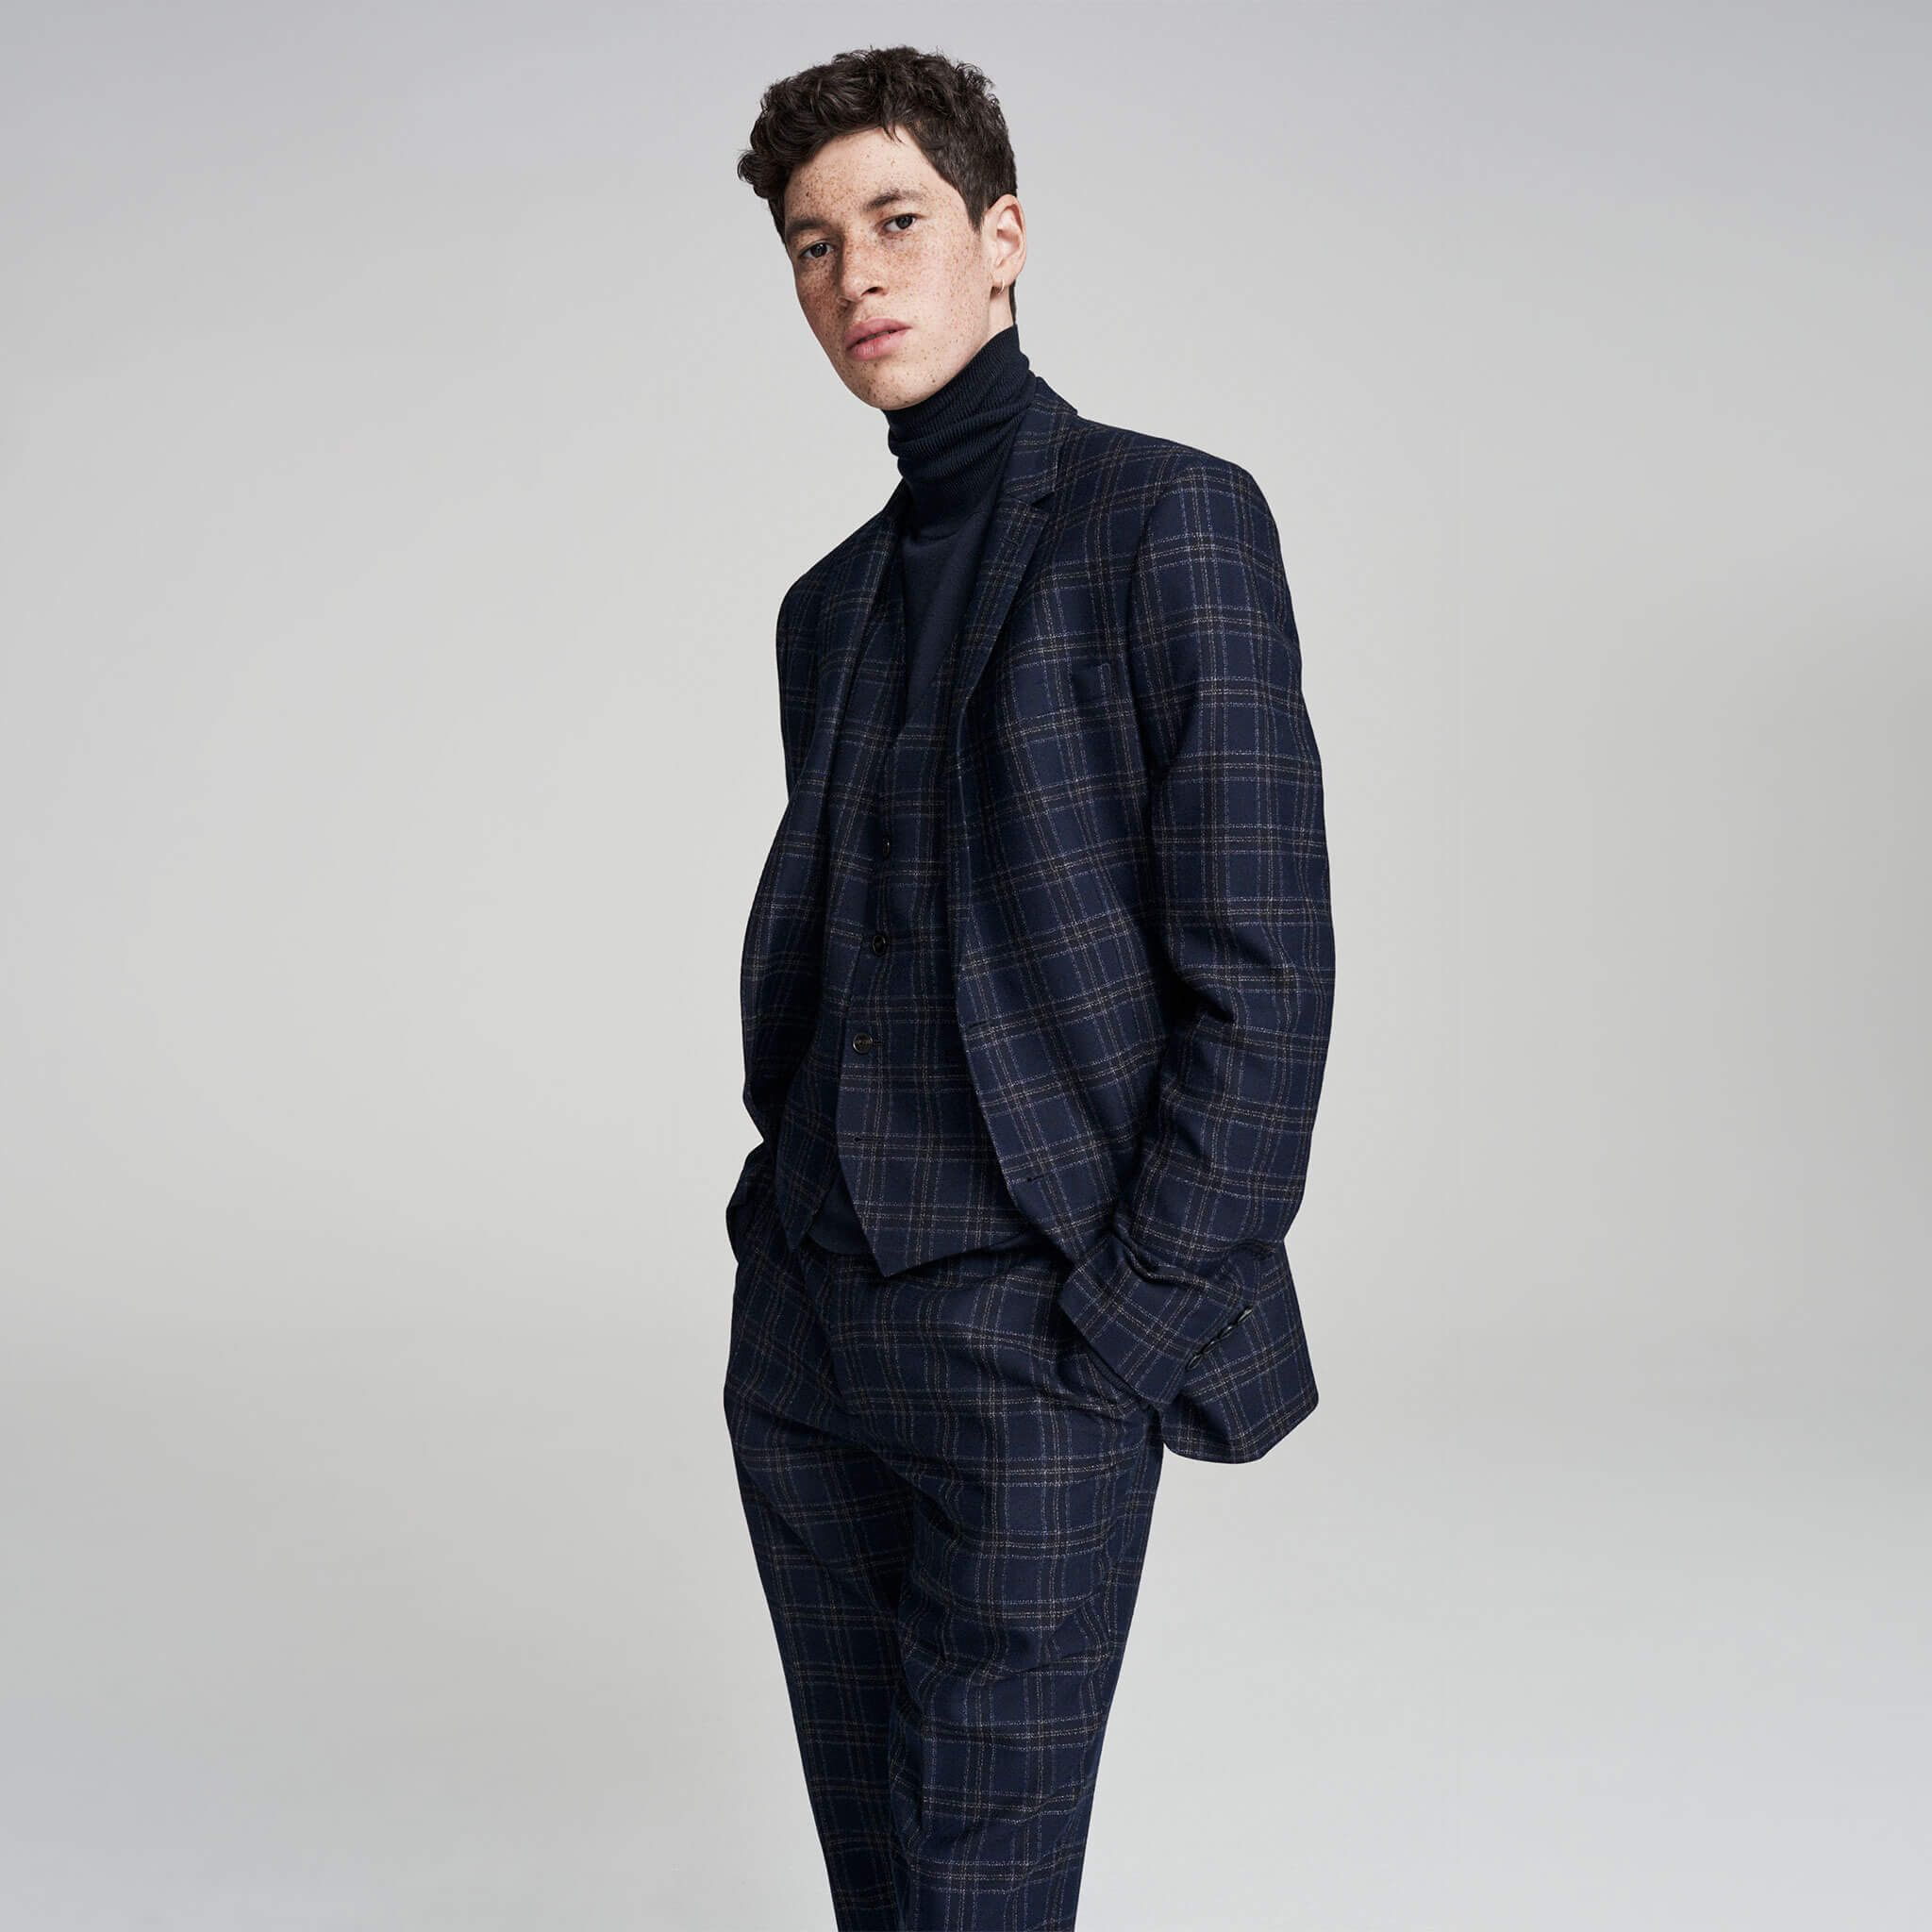 Kin Men's Suiting